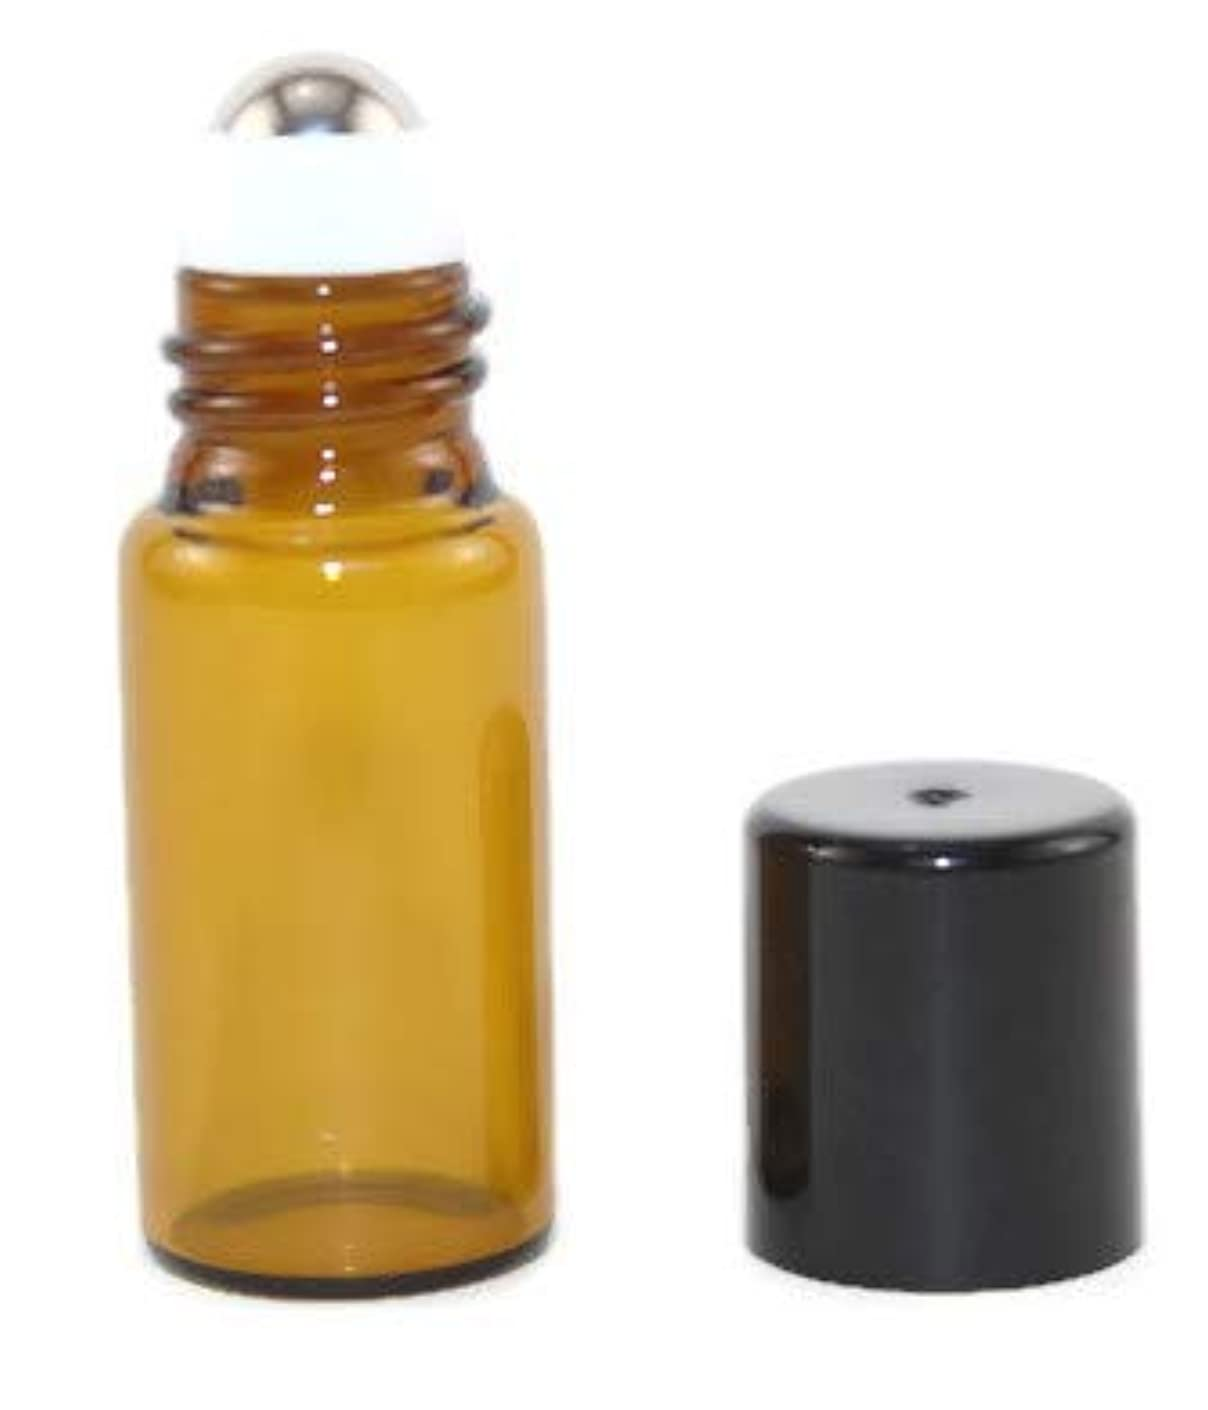 ハイライト非アクティブ警戒USA 144 Amber Glass 3 ml Mini Roll-On Glass Bottles with Stainless Steel Roller Balls - Refillable Aromatherapy...